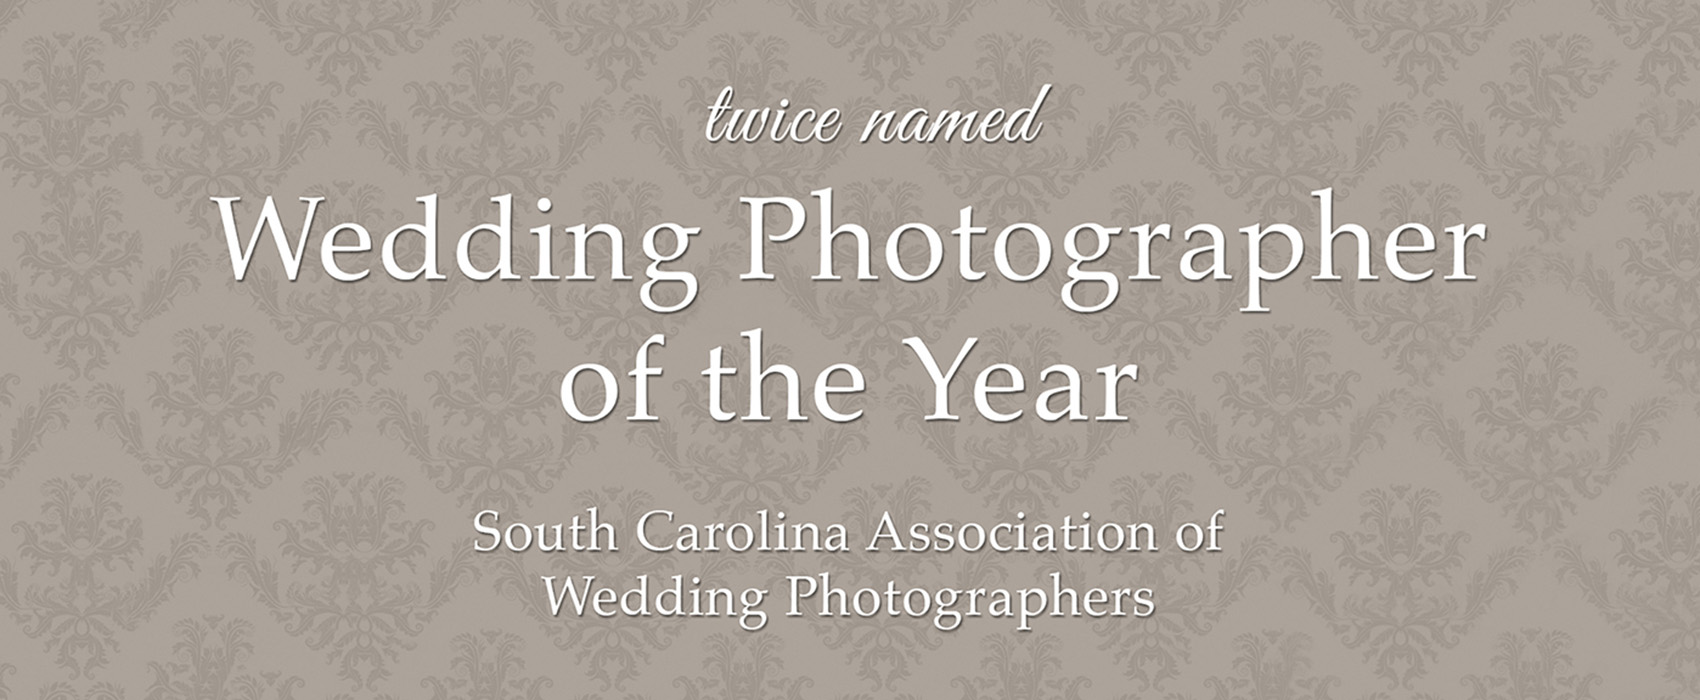 Sposa Bella Photography has twice been named Wedding Photographer of the Year by the South Carolina Association of Wedding Photographers.